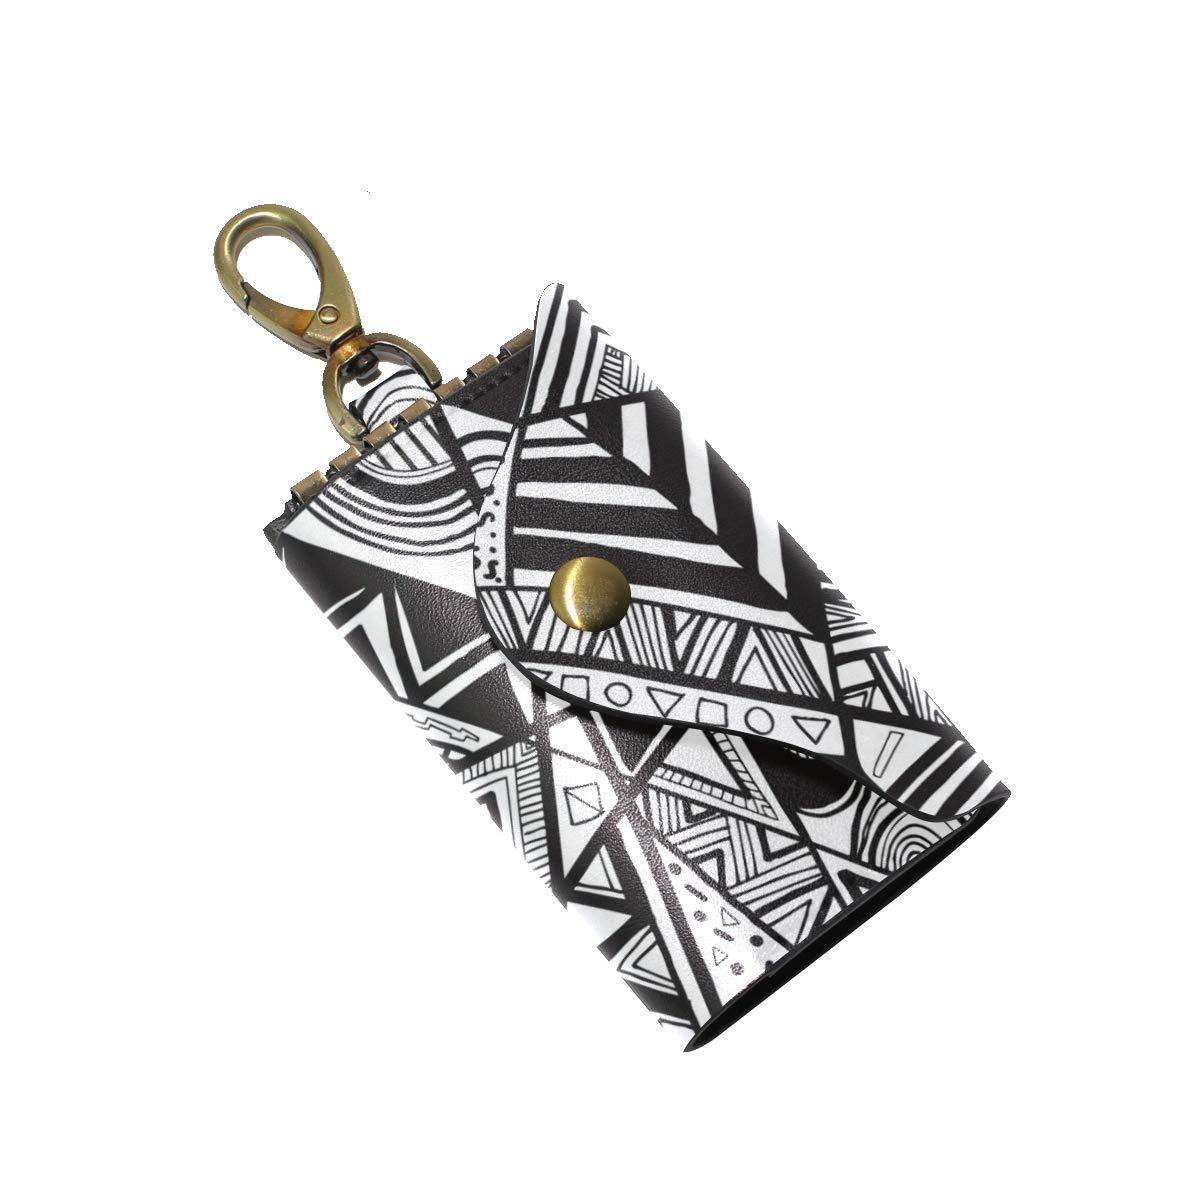 KEAKIA Graphic Pattern Leather Key Case Wallets Tri-fold Key Holder Keychains with 6 Hooks 2 Slot Snap Closure for Men Women